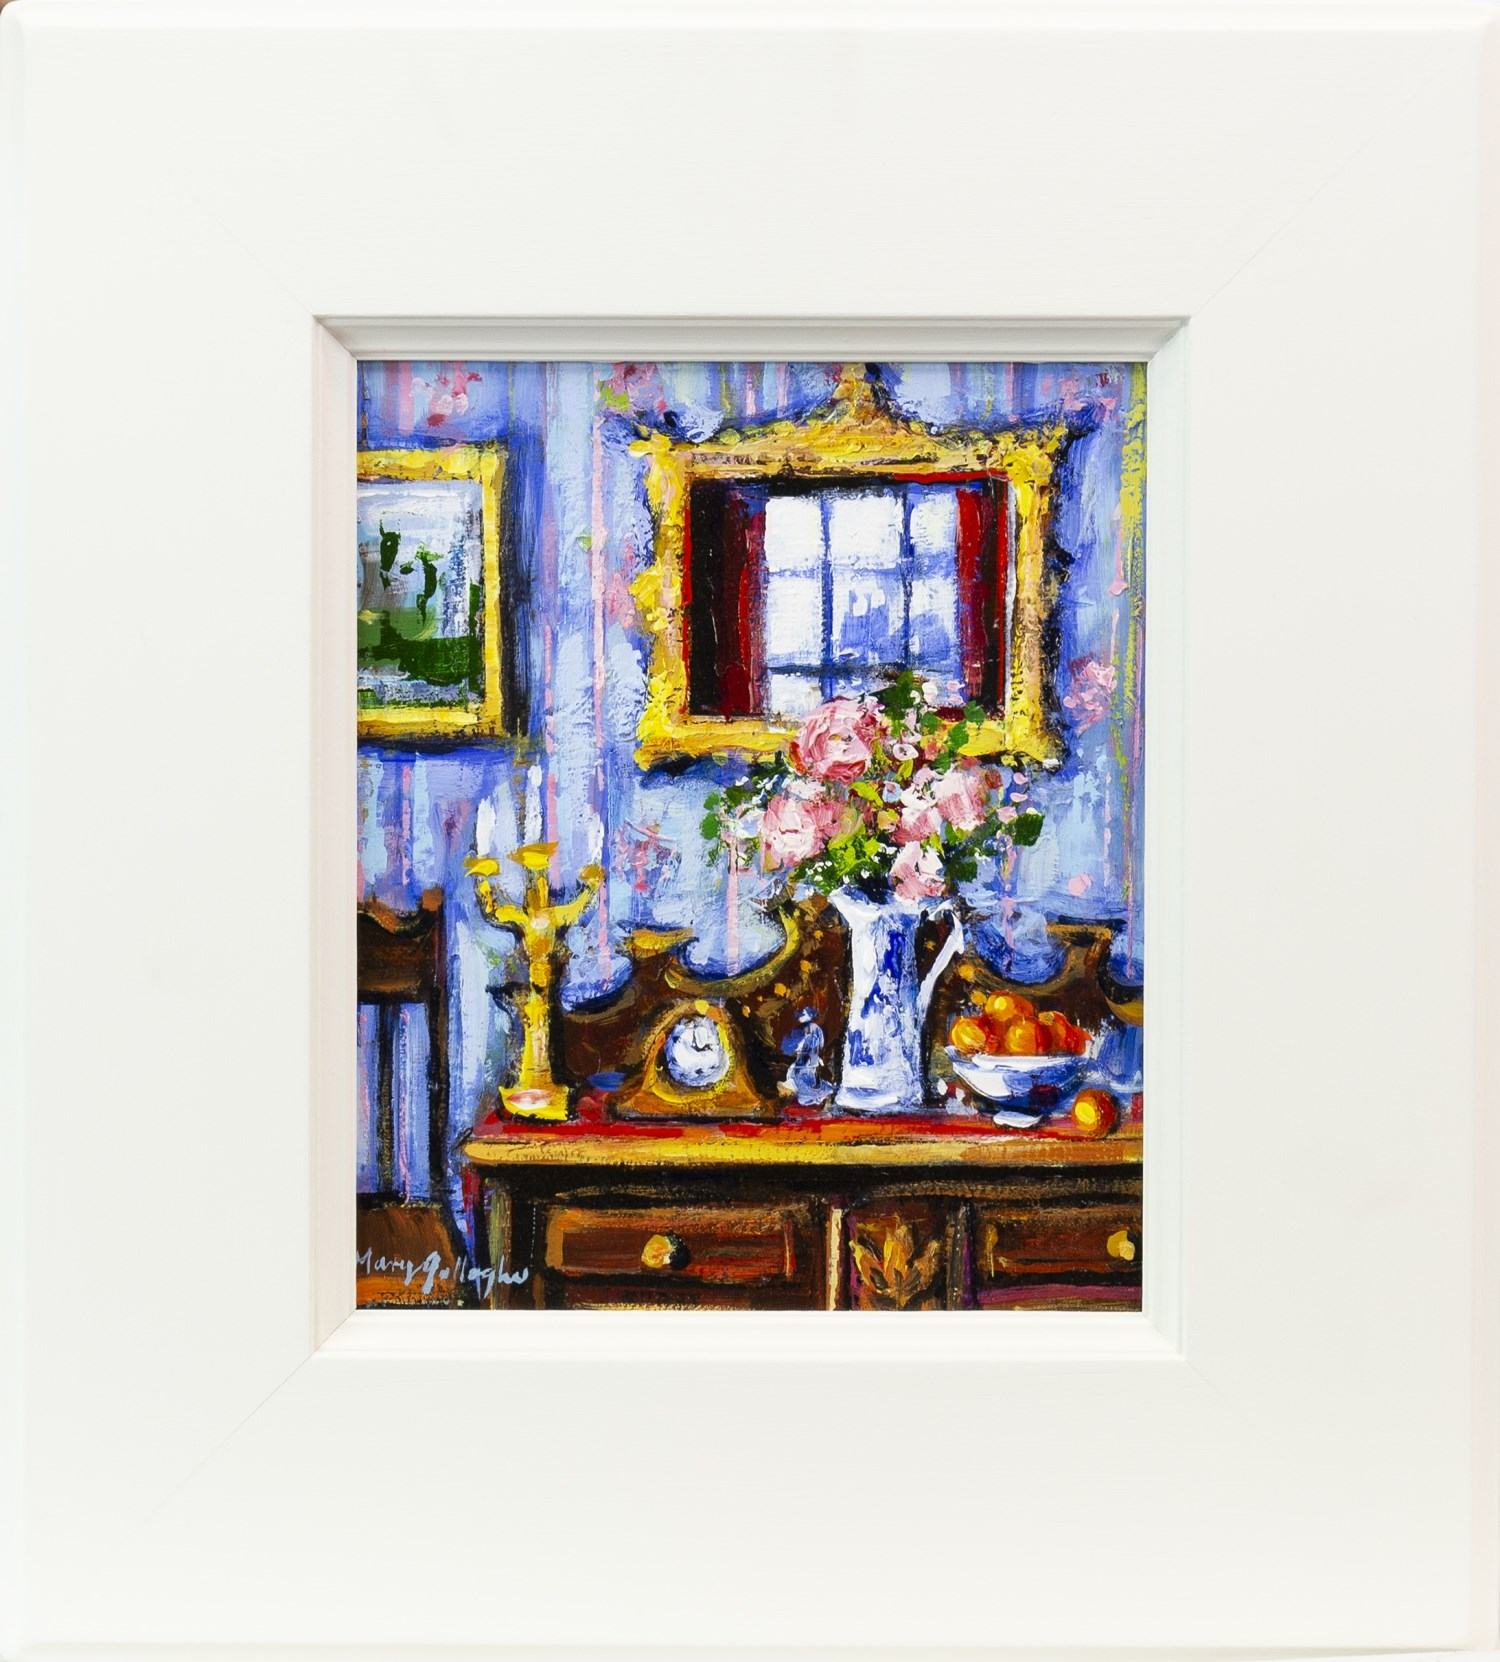 Lot 62 - GRAND INTERIOR WITH CHINESE JUG, AN OIL ON BOARD BY MARY GALLAGHER